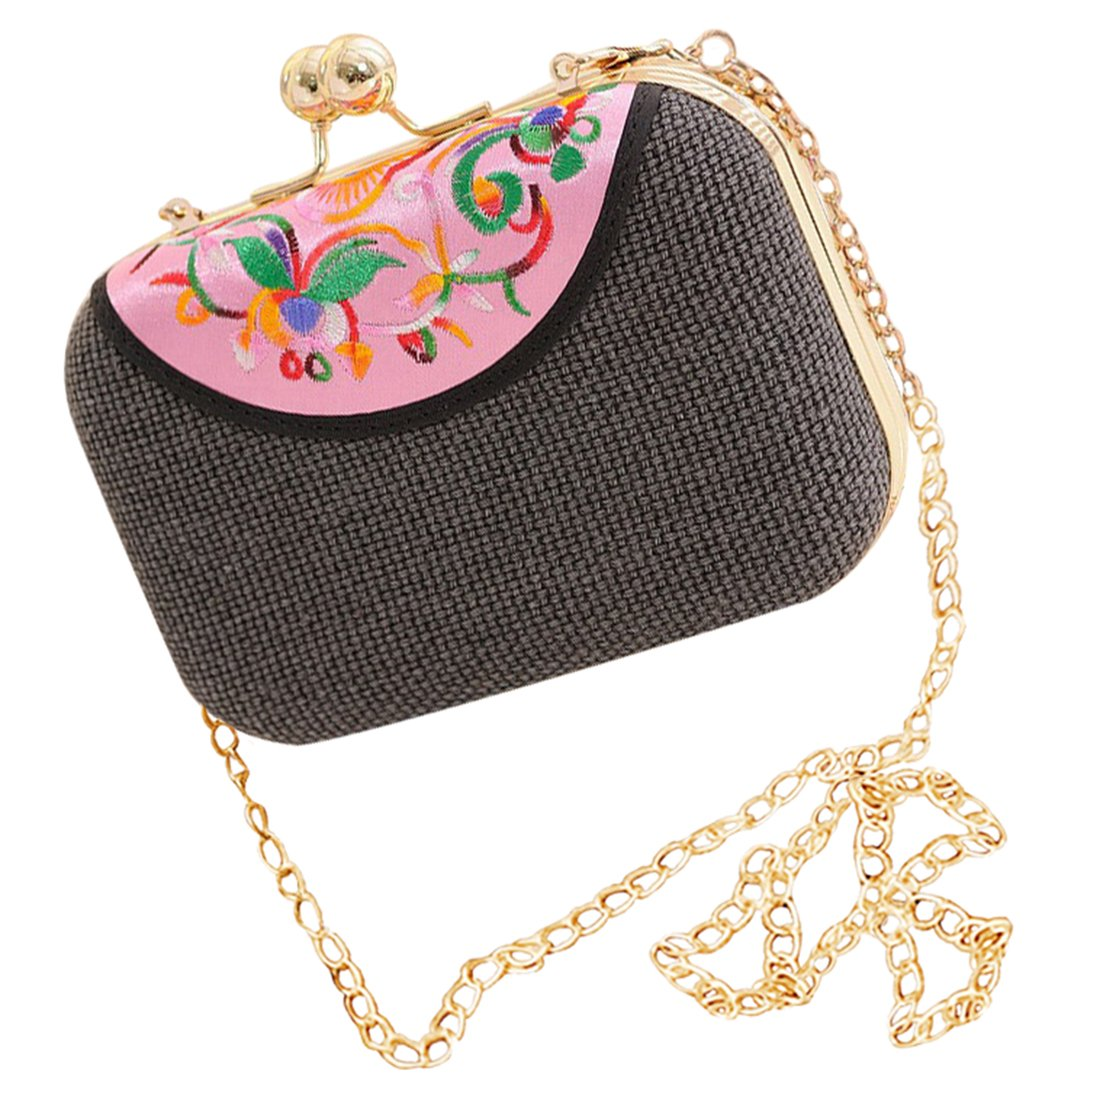 2690eae471db8 Retro national style Girls Shoulder Bag - SODIAL(R)Retro national style PU  leather Women s mini evening bag fashion clutch banquet bag girls shoulder  bag ...